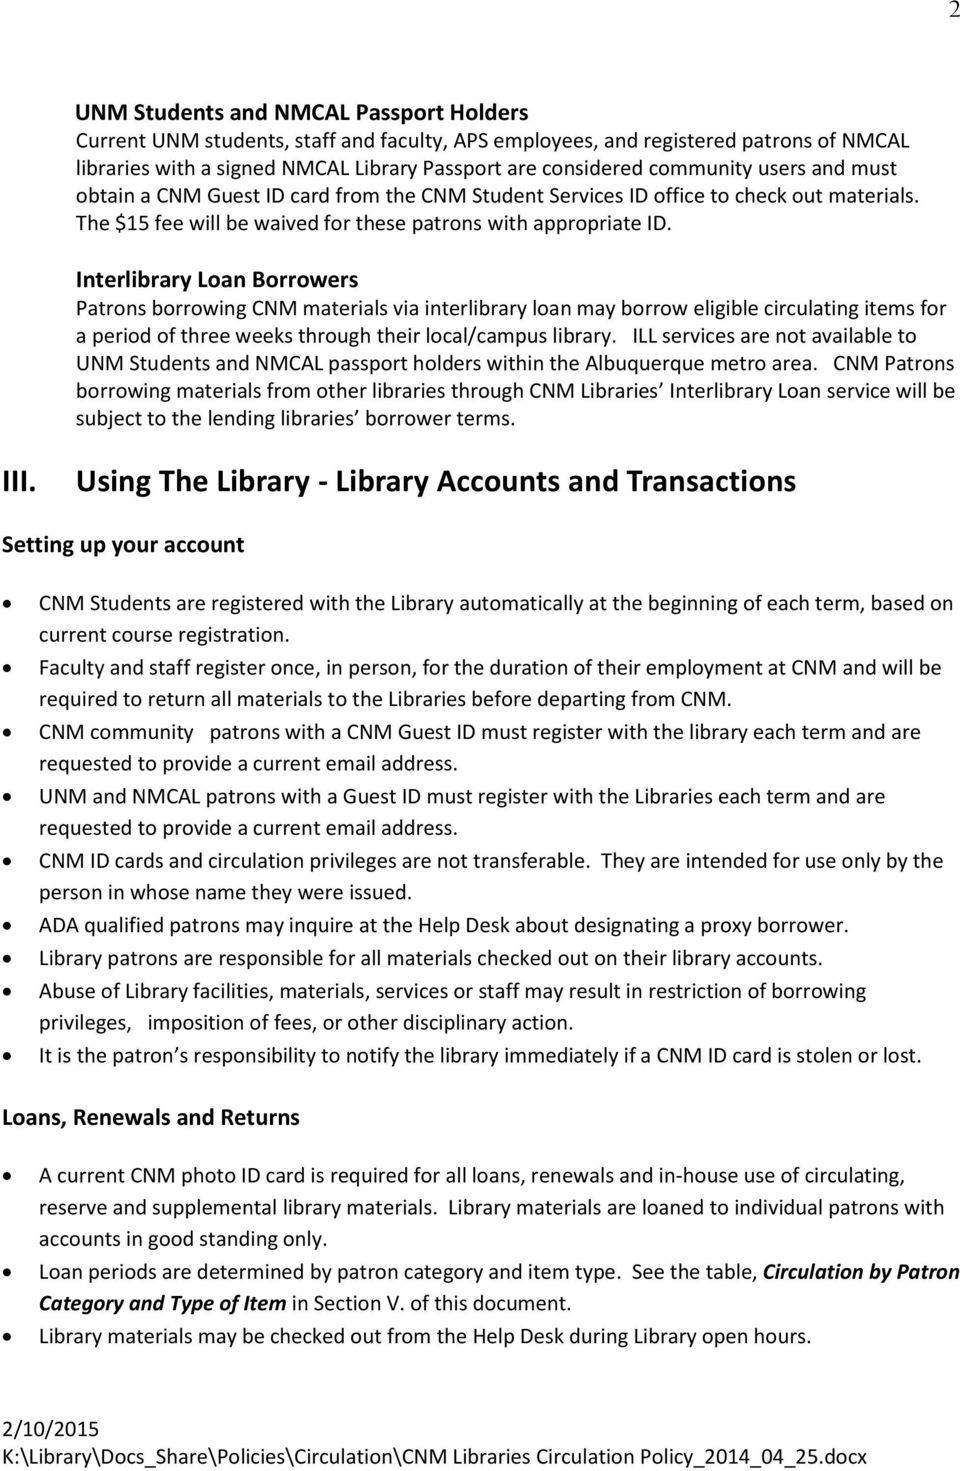 Interlibrary Loan Borrowers Patrons borrowing CNM materials via interlibrary loan may borrow eligible circulating items for a period of three weeks through their local/campus library.